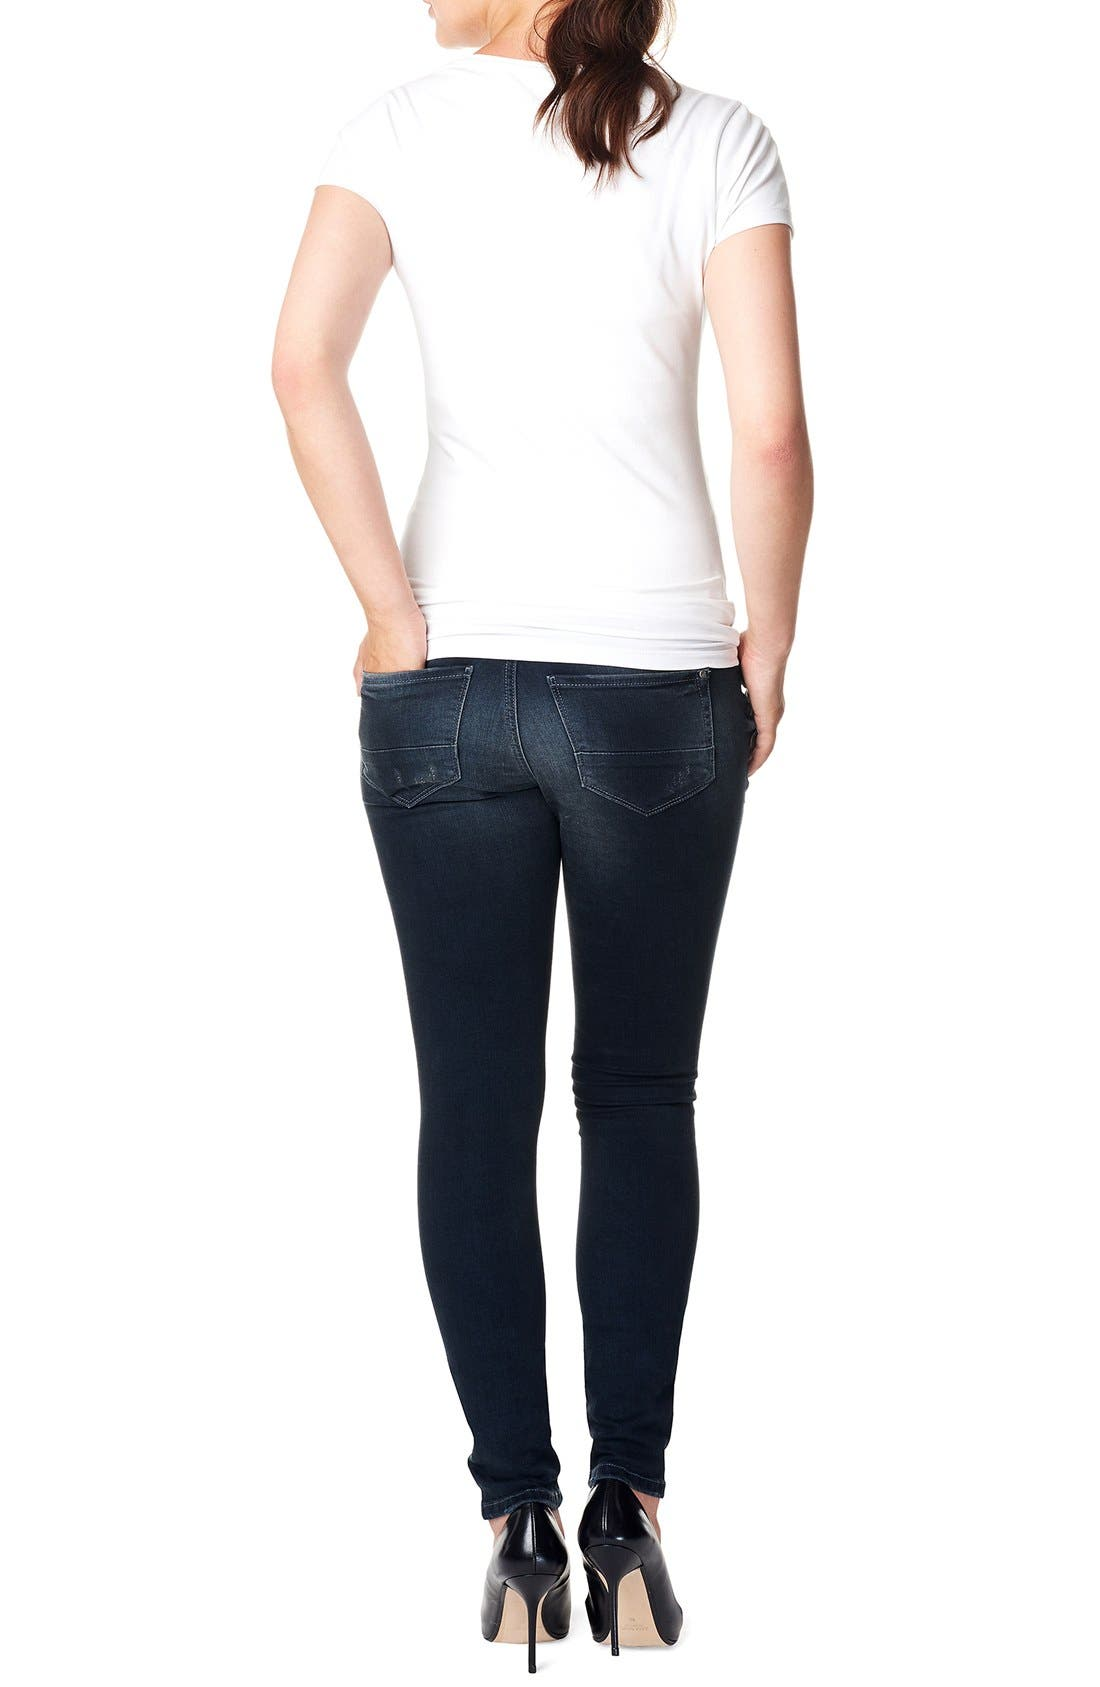 'Britt' Over the Belly Skinny Maternity Jeans,                             Alternate thumbnail 2, color,                             Dark Stone Wash